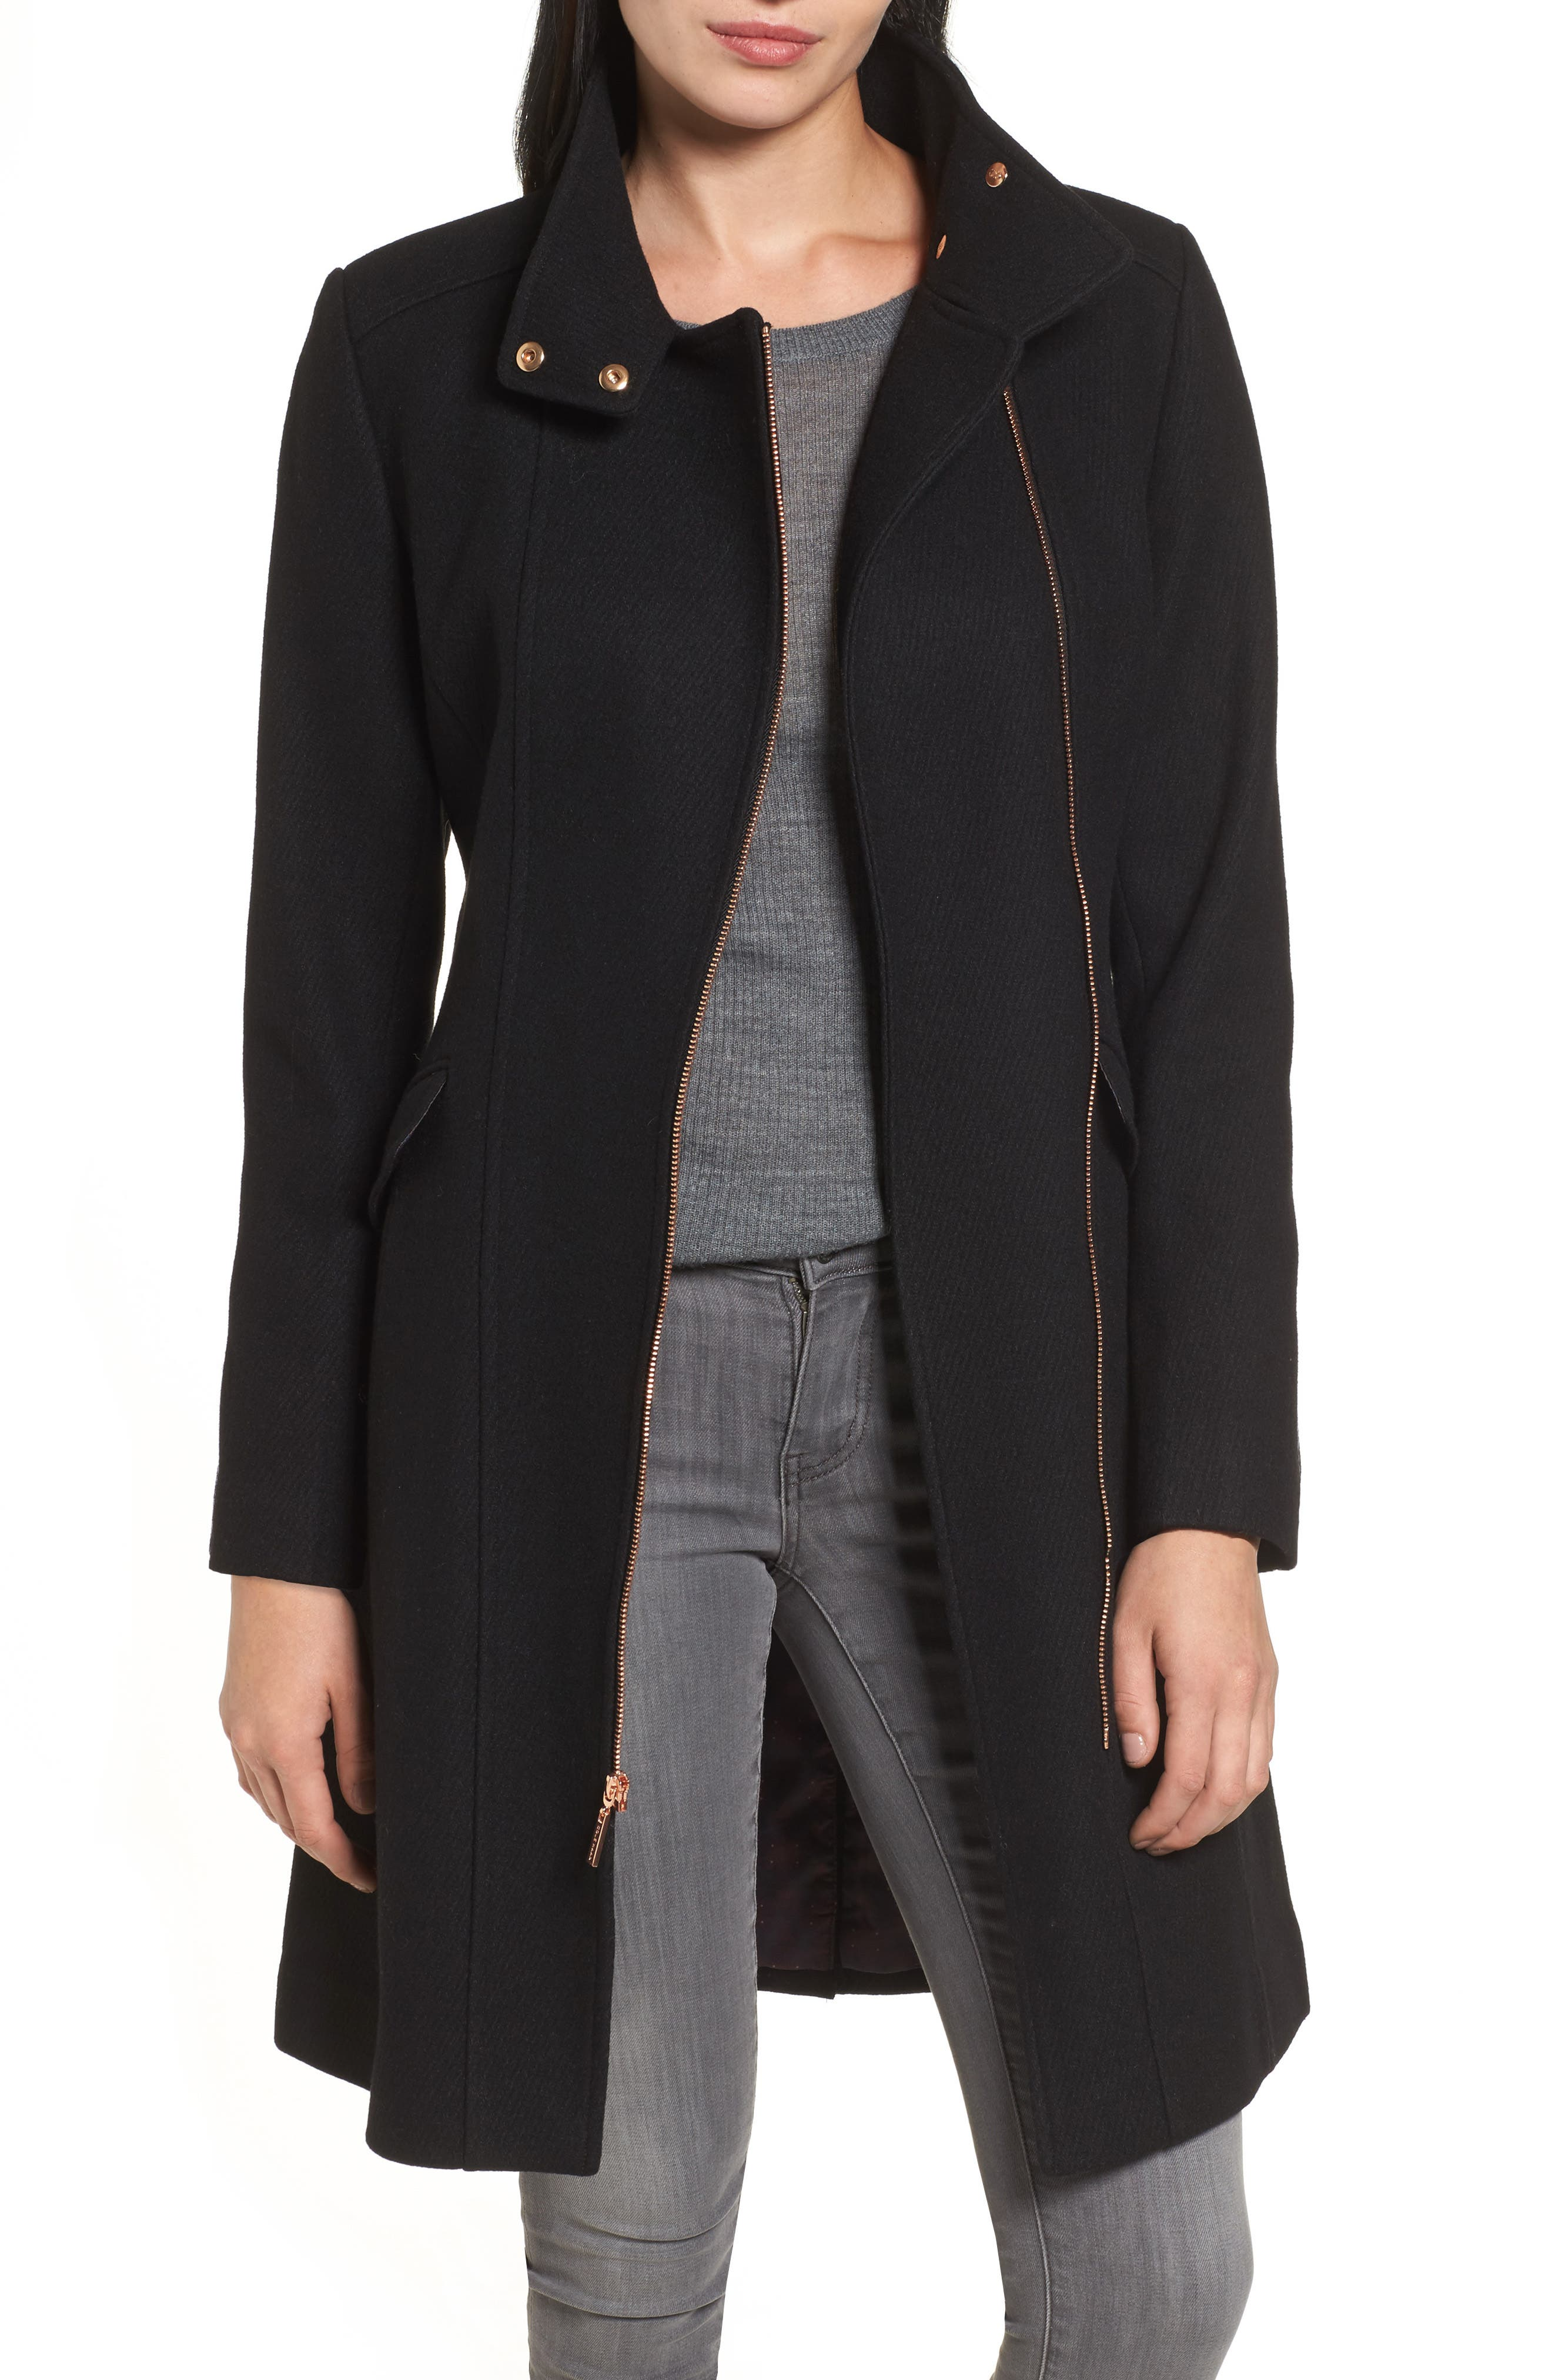 COLE HAAN SIGNATURE Coat